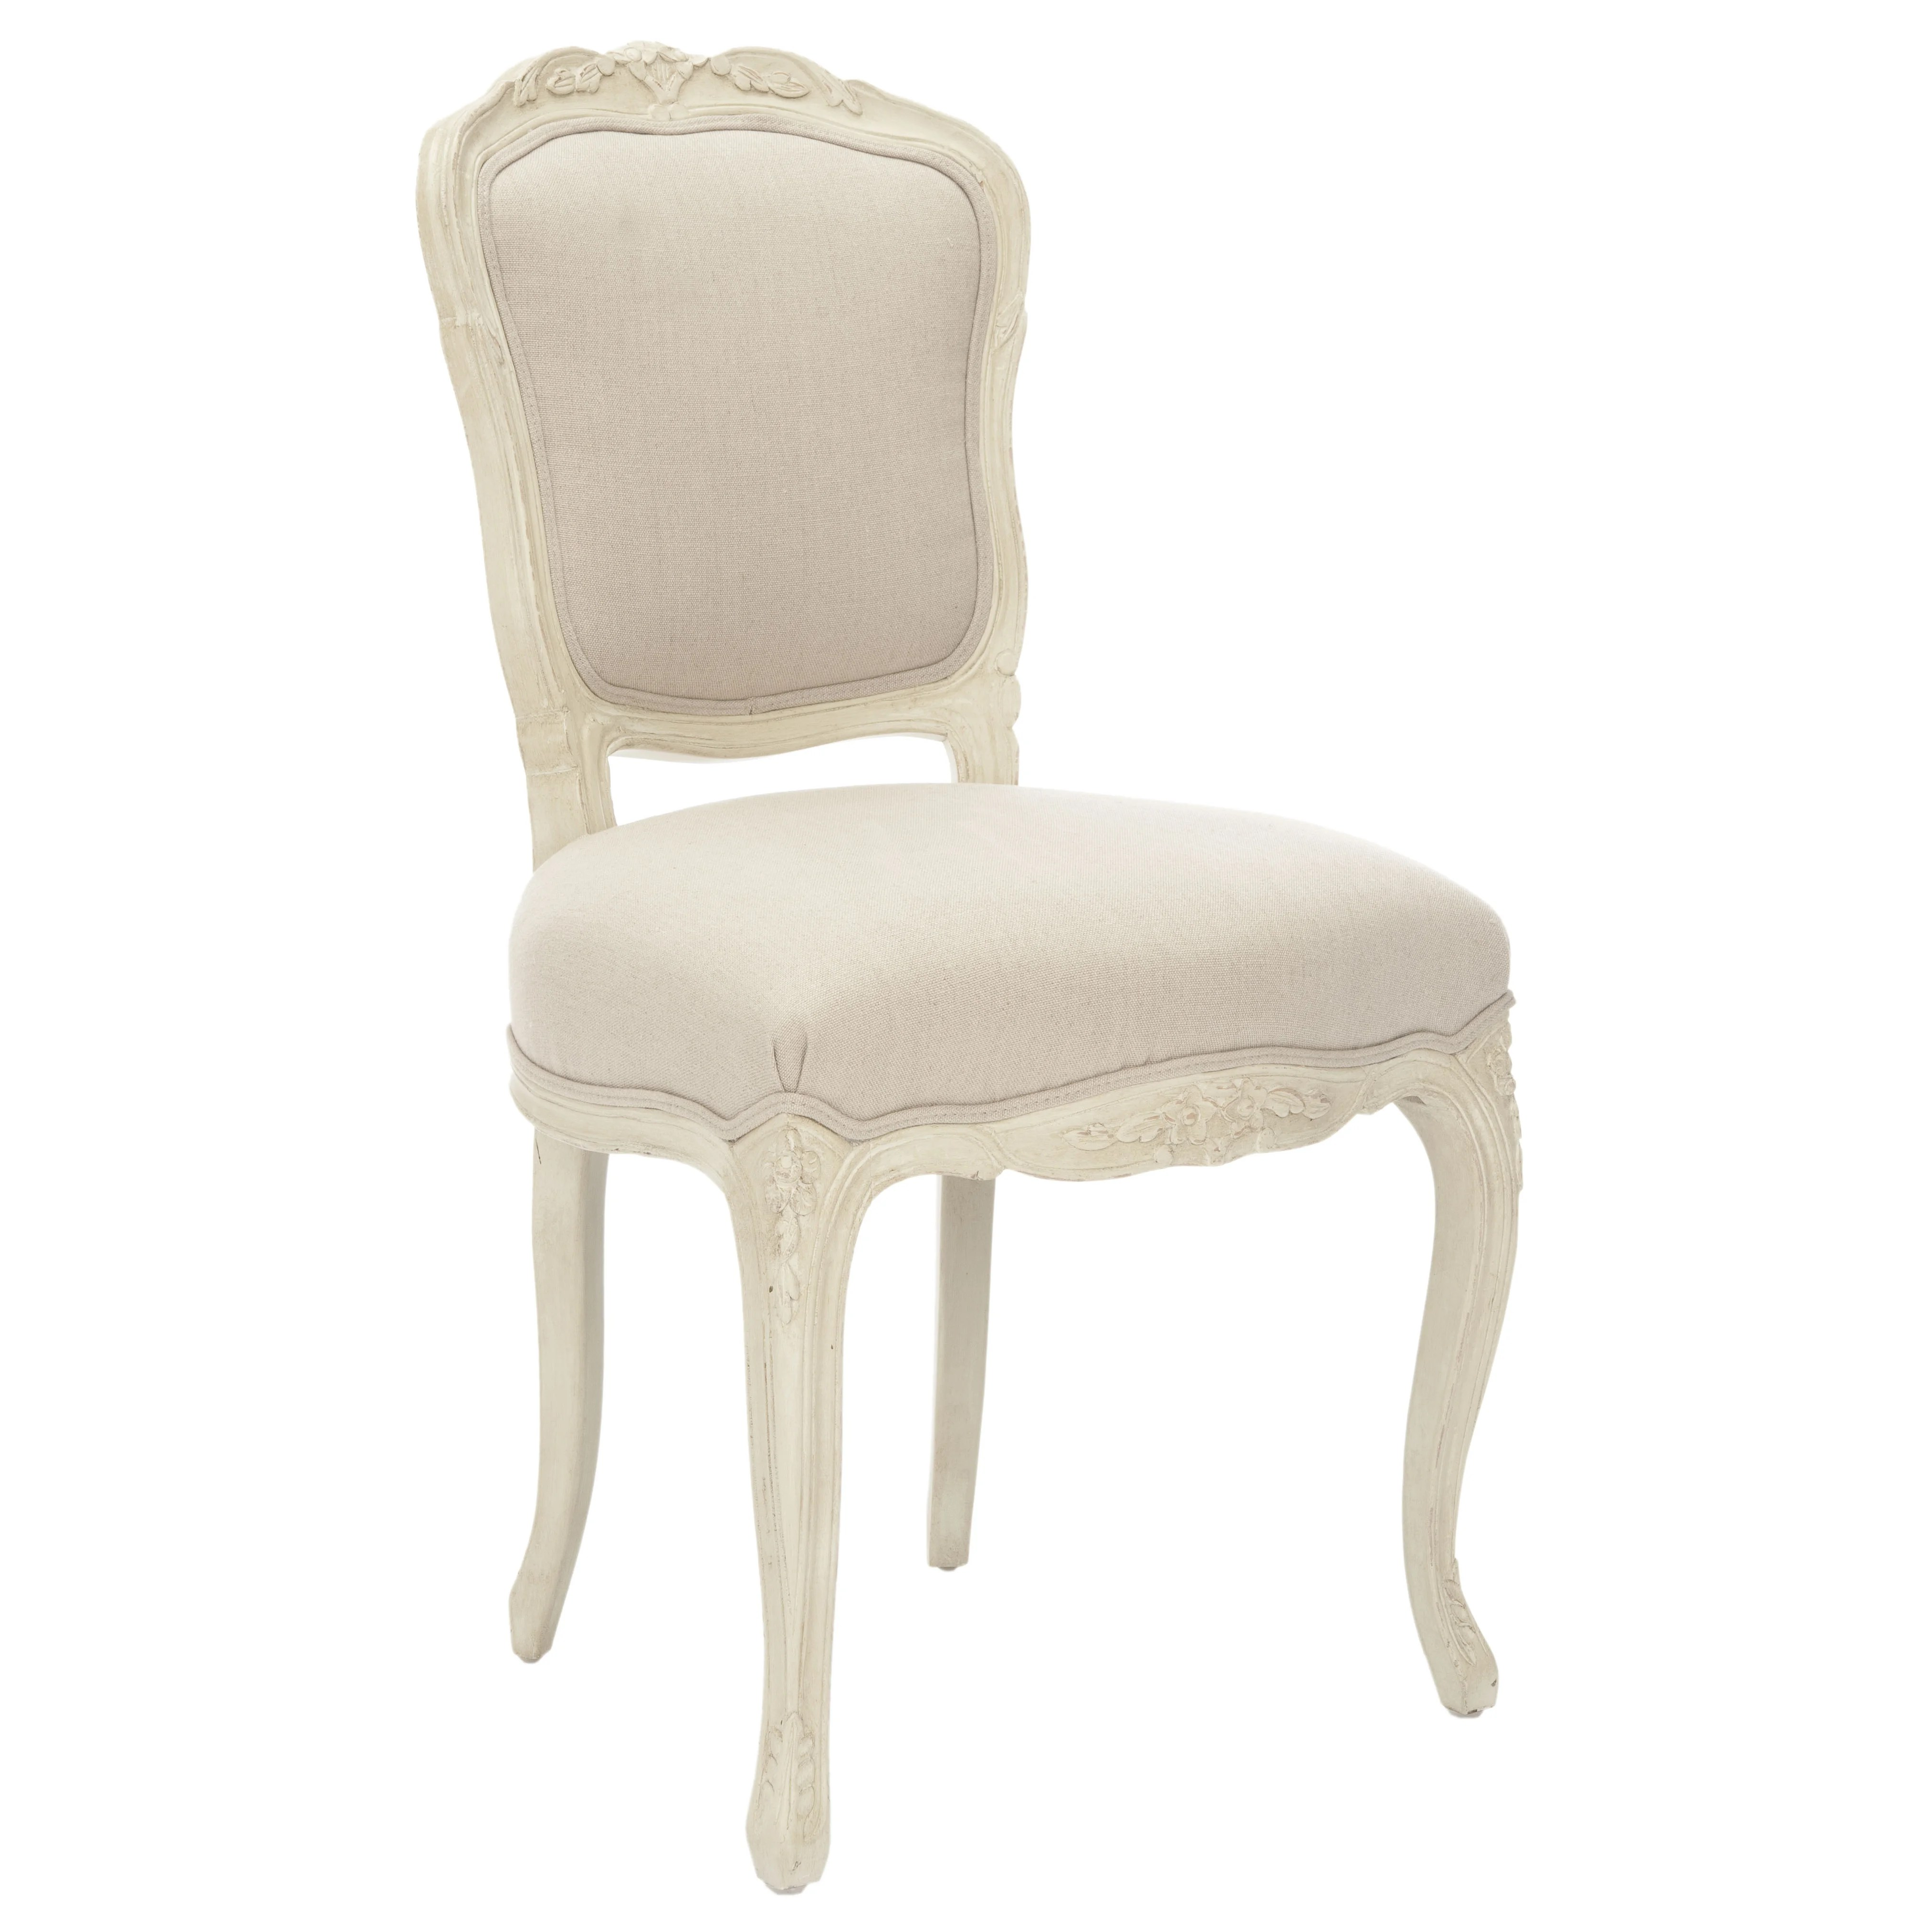 safavieh dining room chairs kitchen dining chairs Dining Furniture Side Kitchen Dining Chairs Safavieh SKU